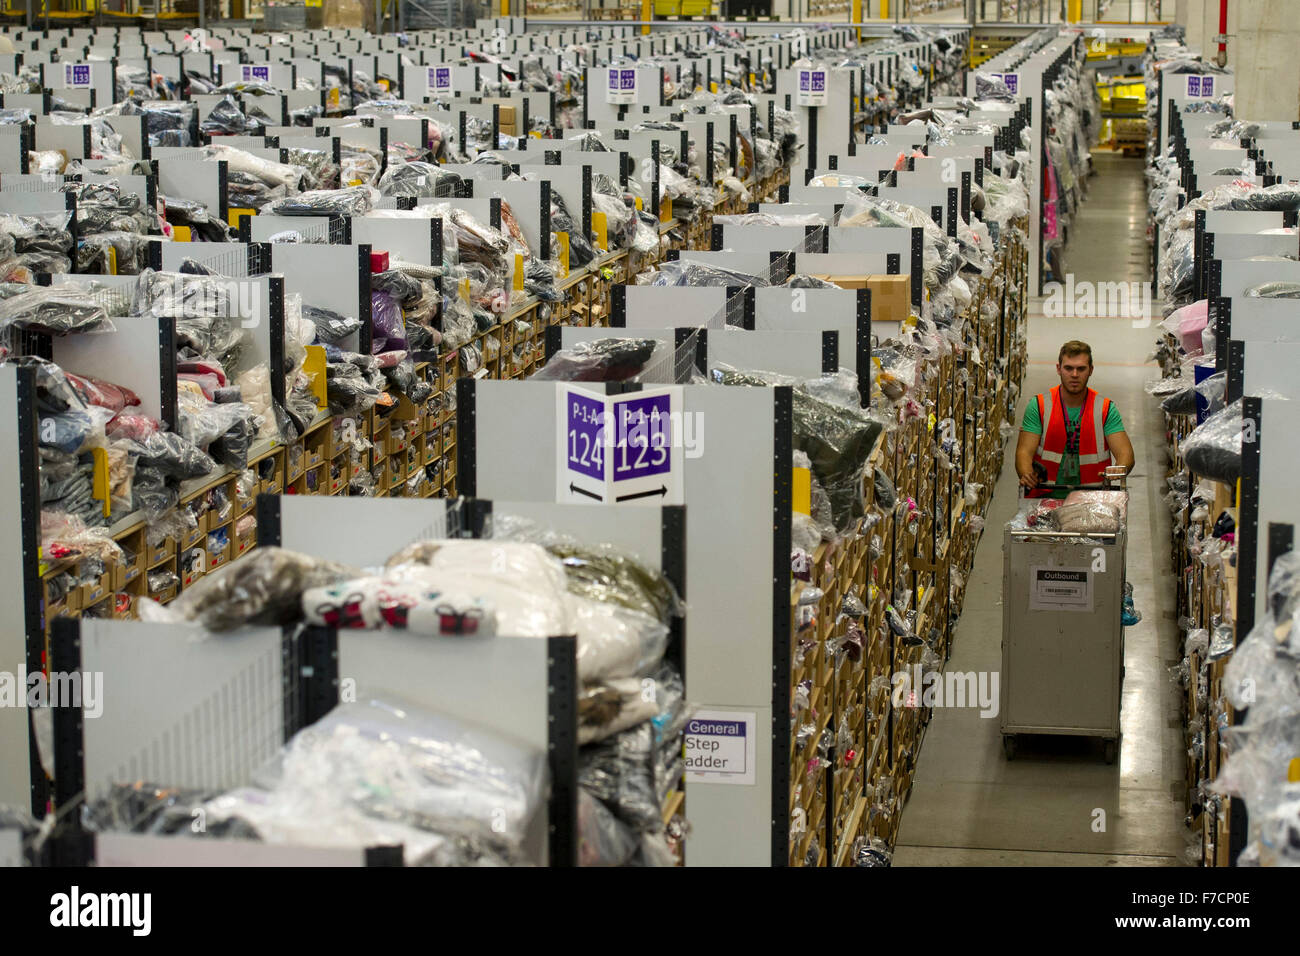 Fulfillment Stock Photos & Fulfillment Stock Images - Page 2 - Alamy